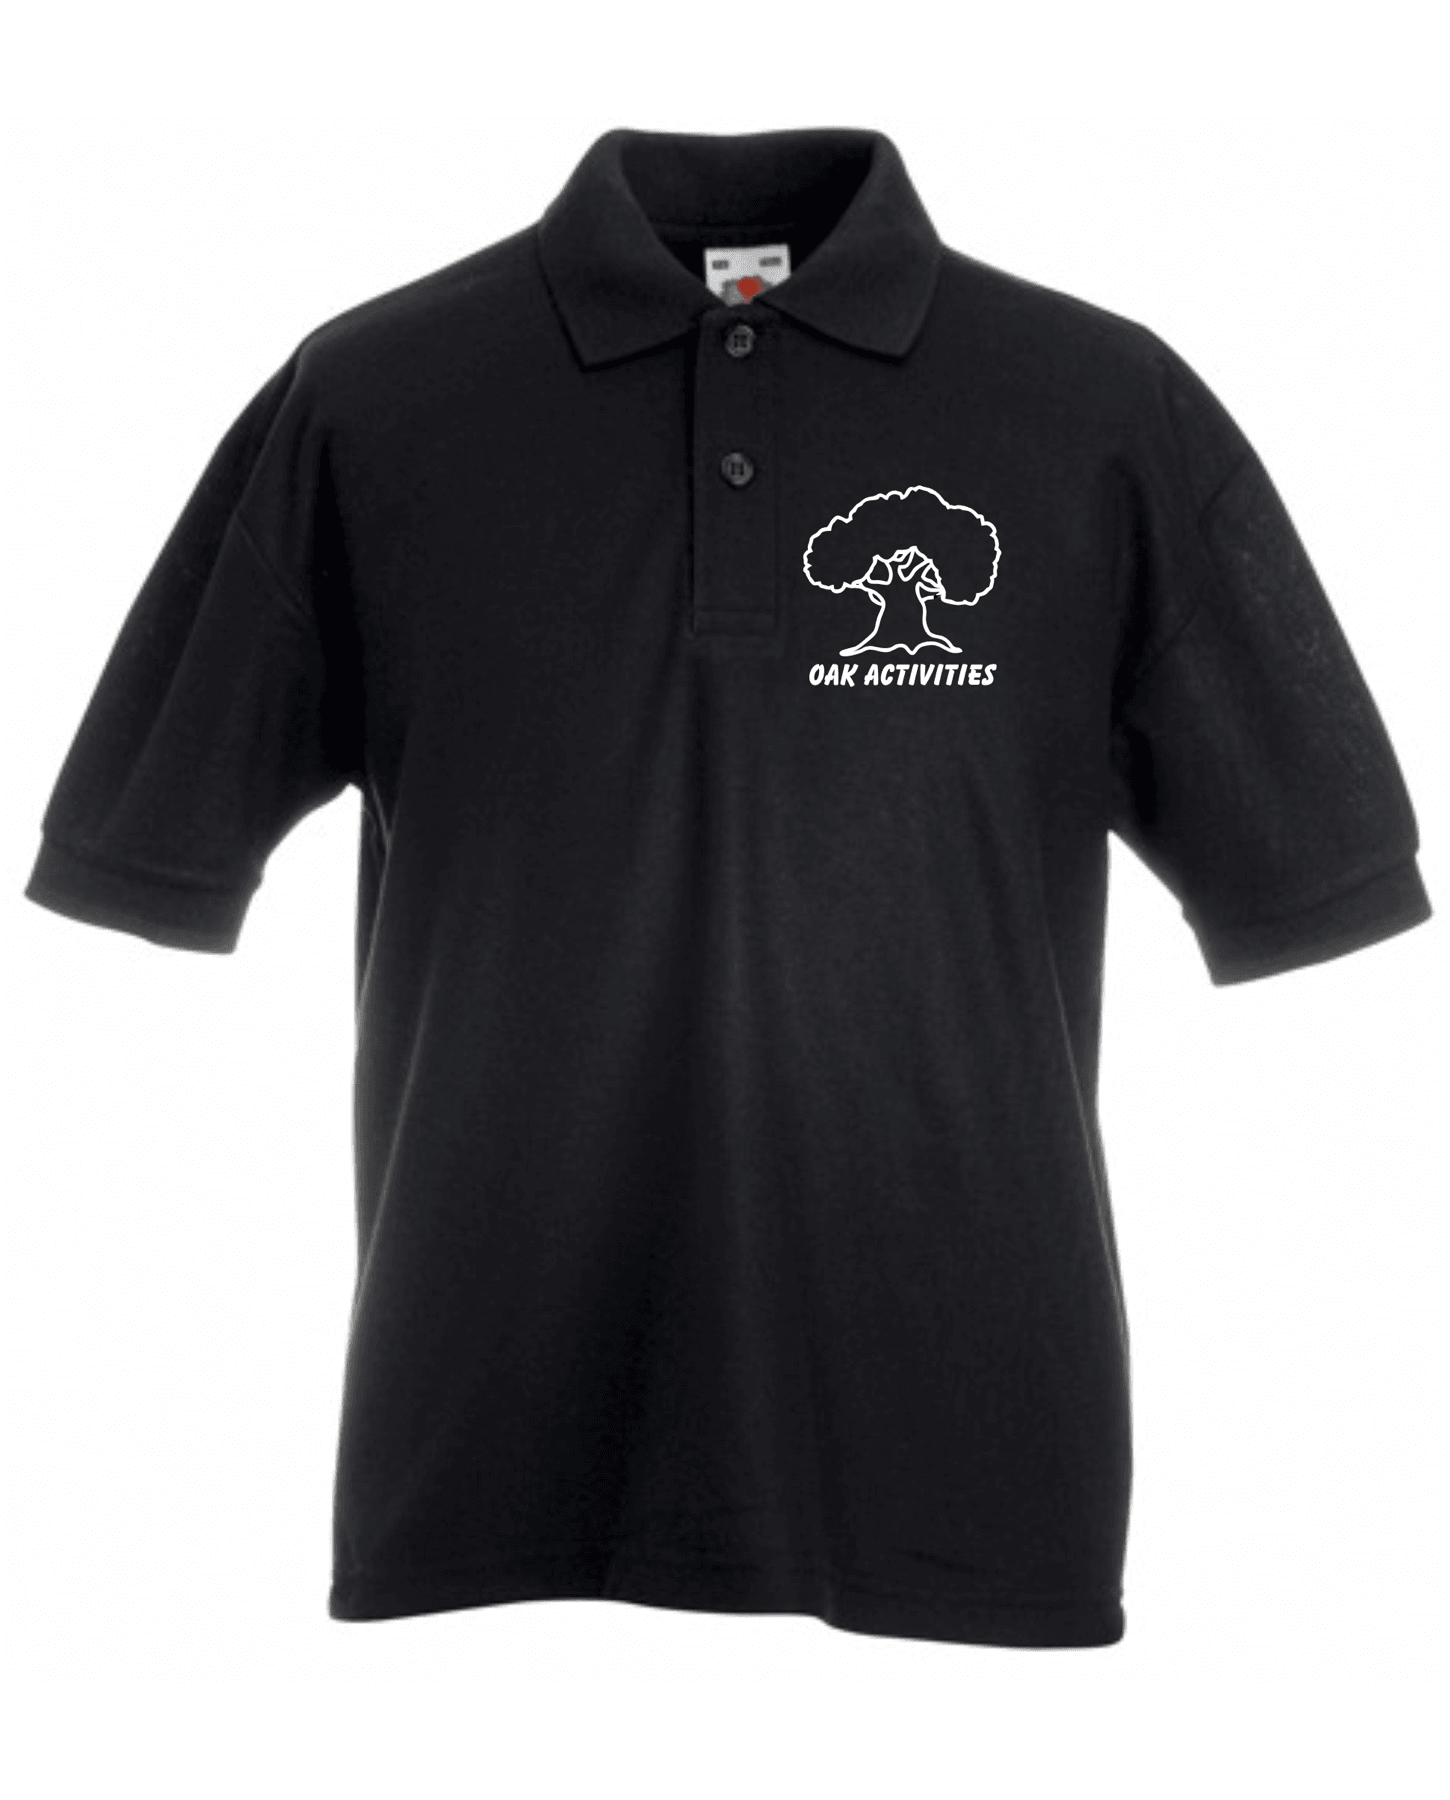 Oak Activities – Kids Pique Polo (Black)